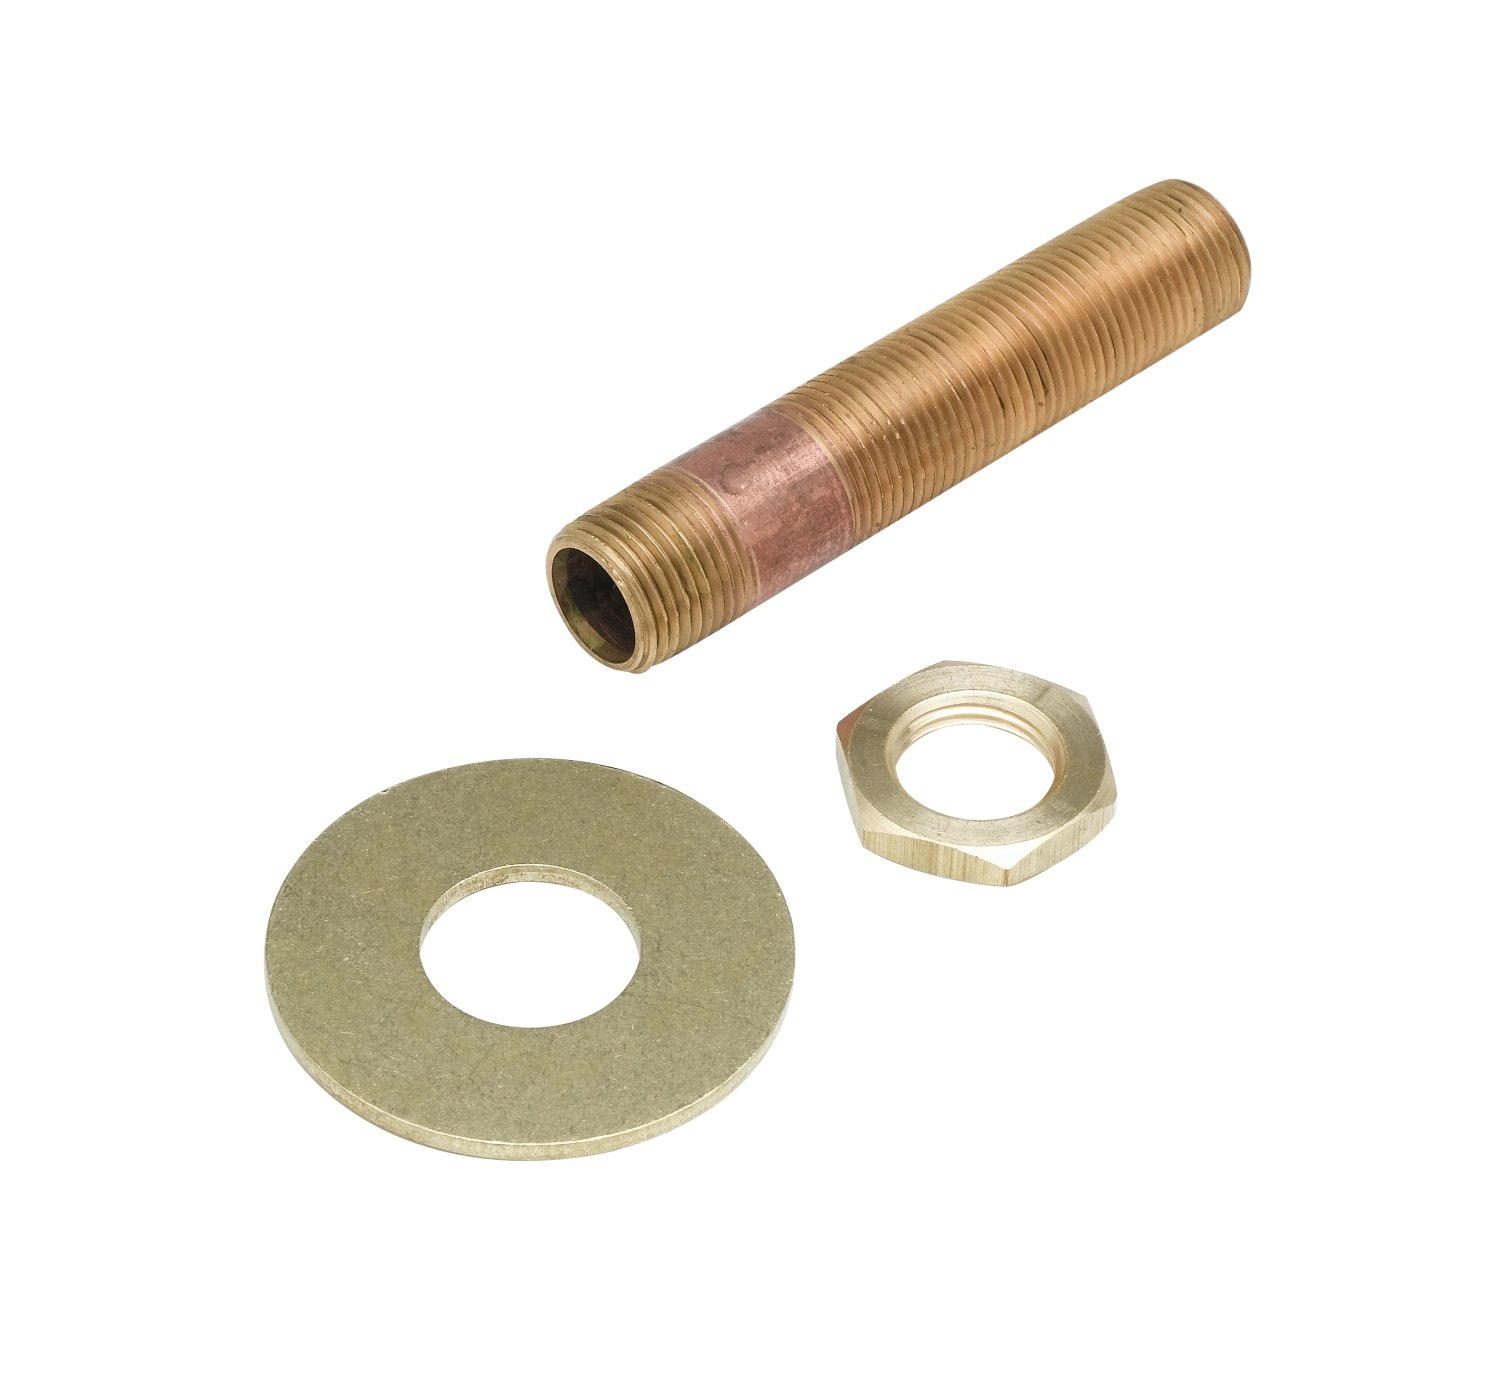 T&S Brass B-0429 3/8-Inch Npt Supply Nipple Kit with 3-3/8-Inch Length, Lock Nut and Washer